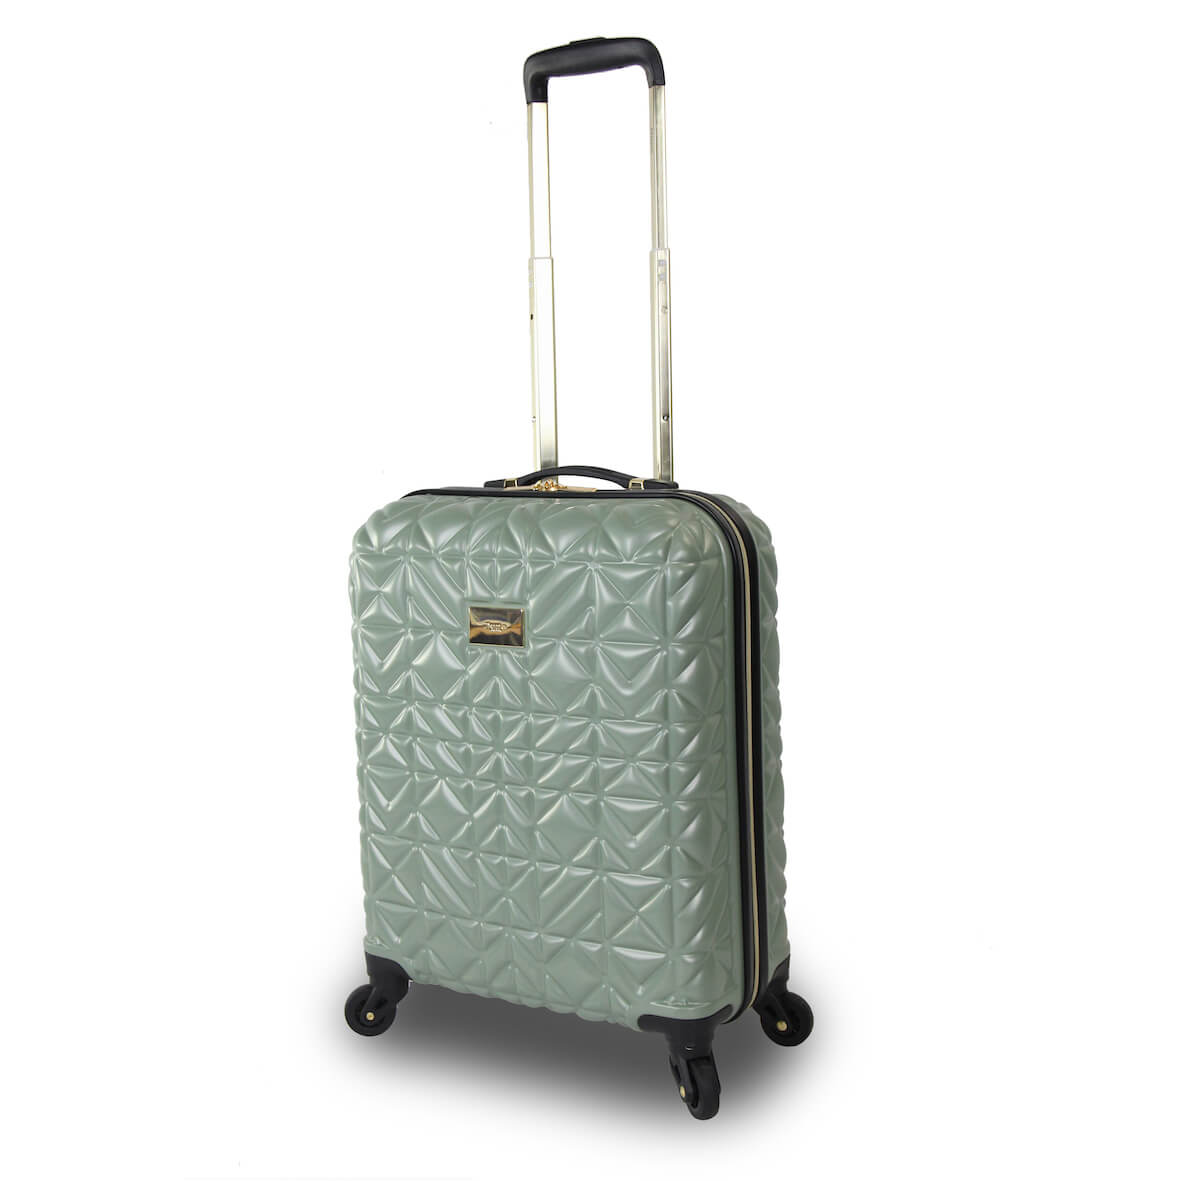 Dune London Tovangelina 55cm 4-Wheel Cabin Case